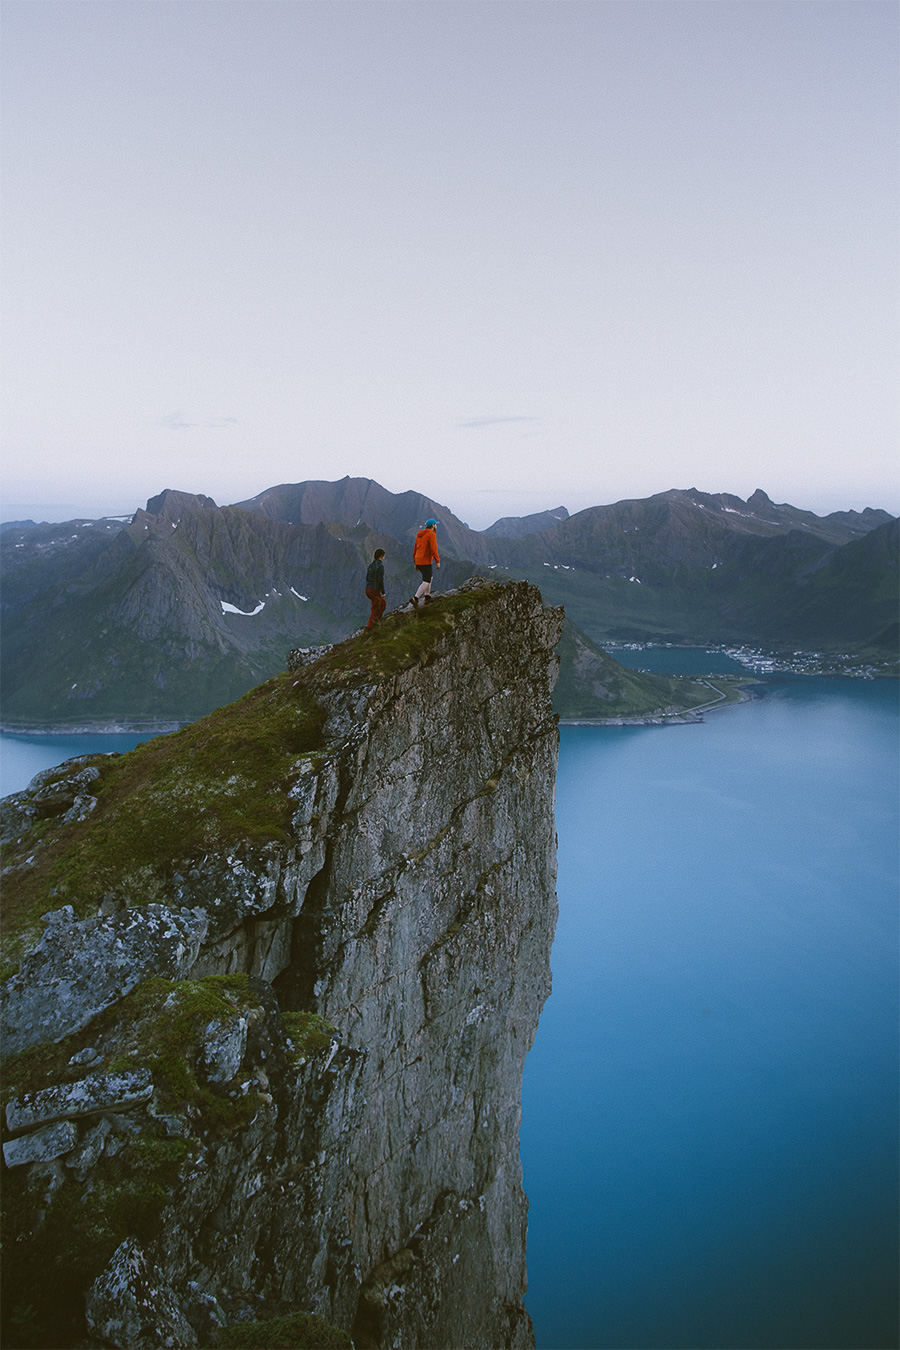 Two people hiking to the edge